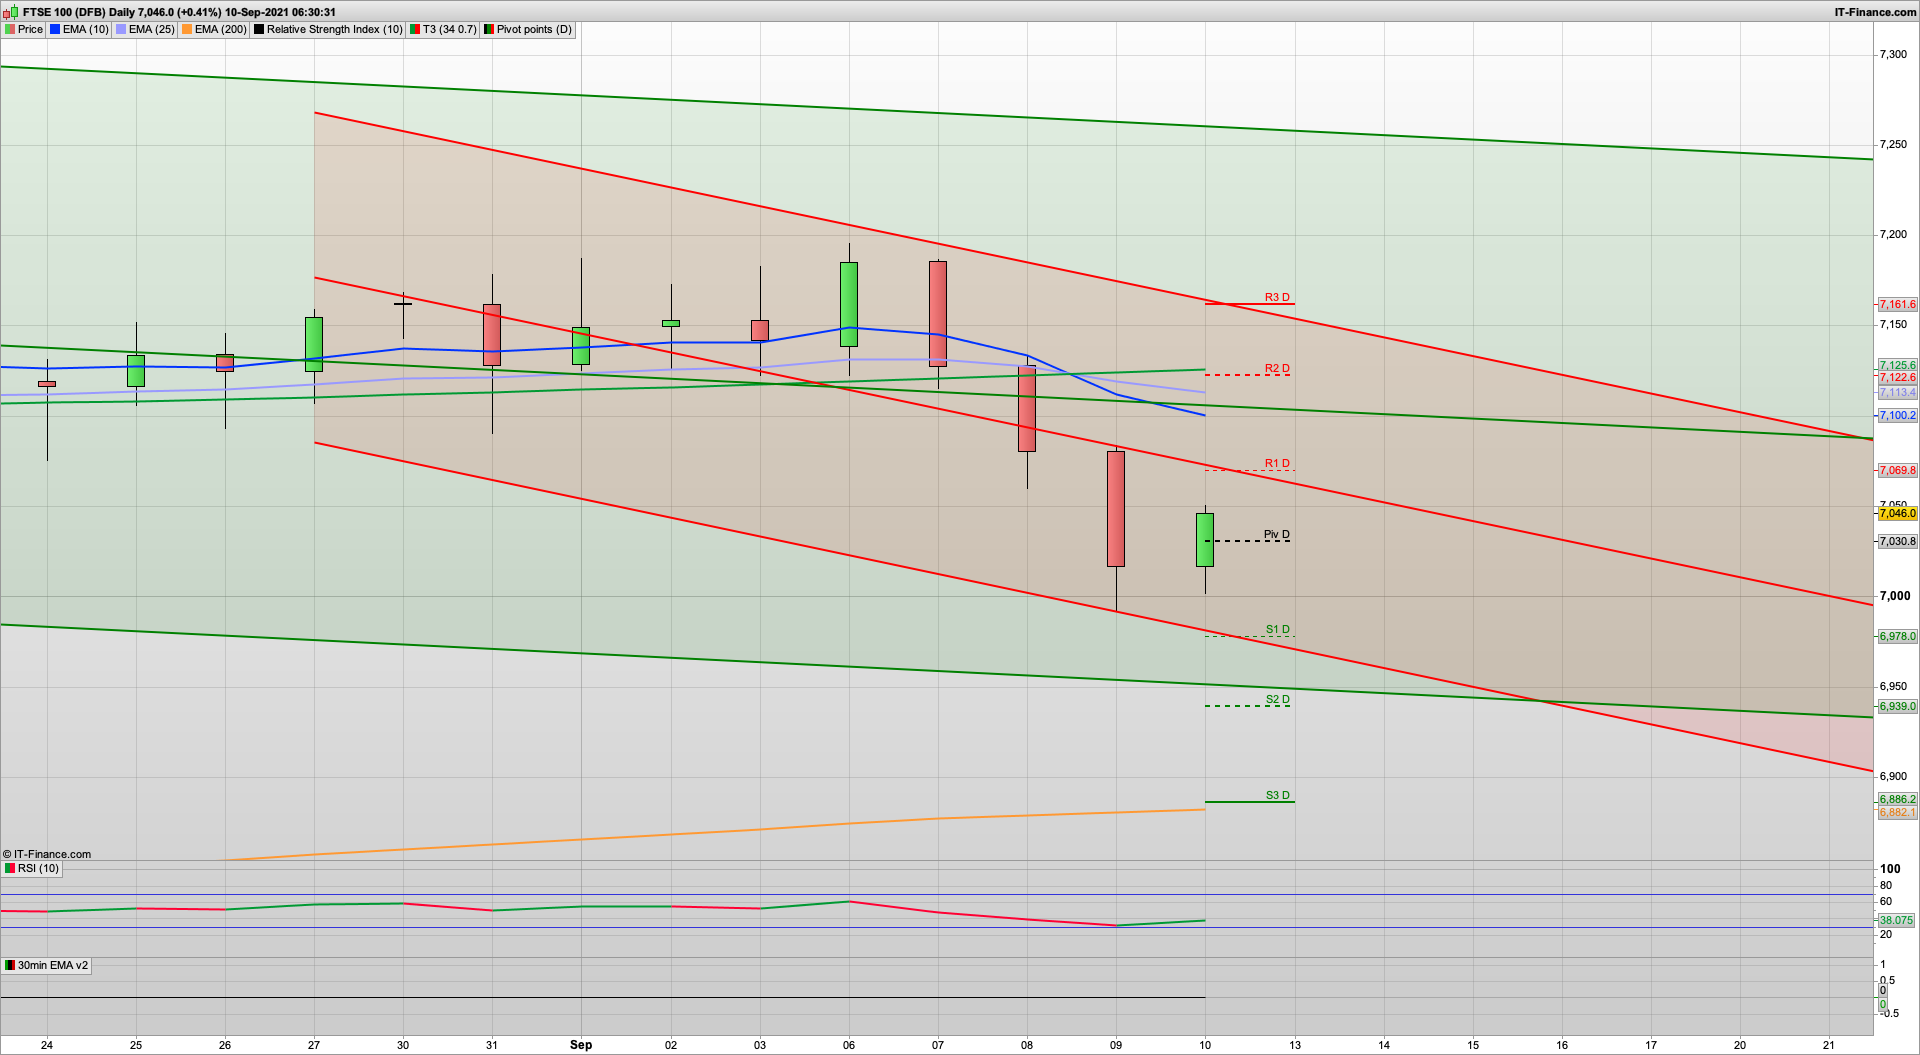 Bulls fight back and defend the 6990 support   7055 7085 7120 resistance   7030 7005 6975 support